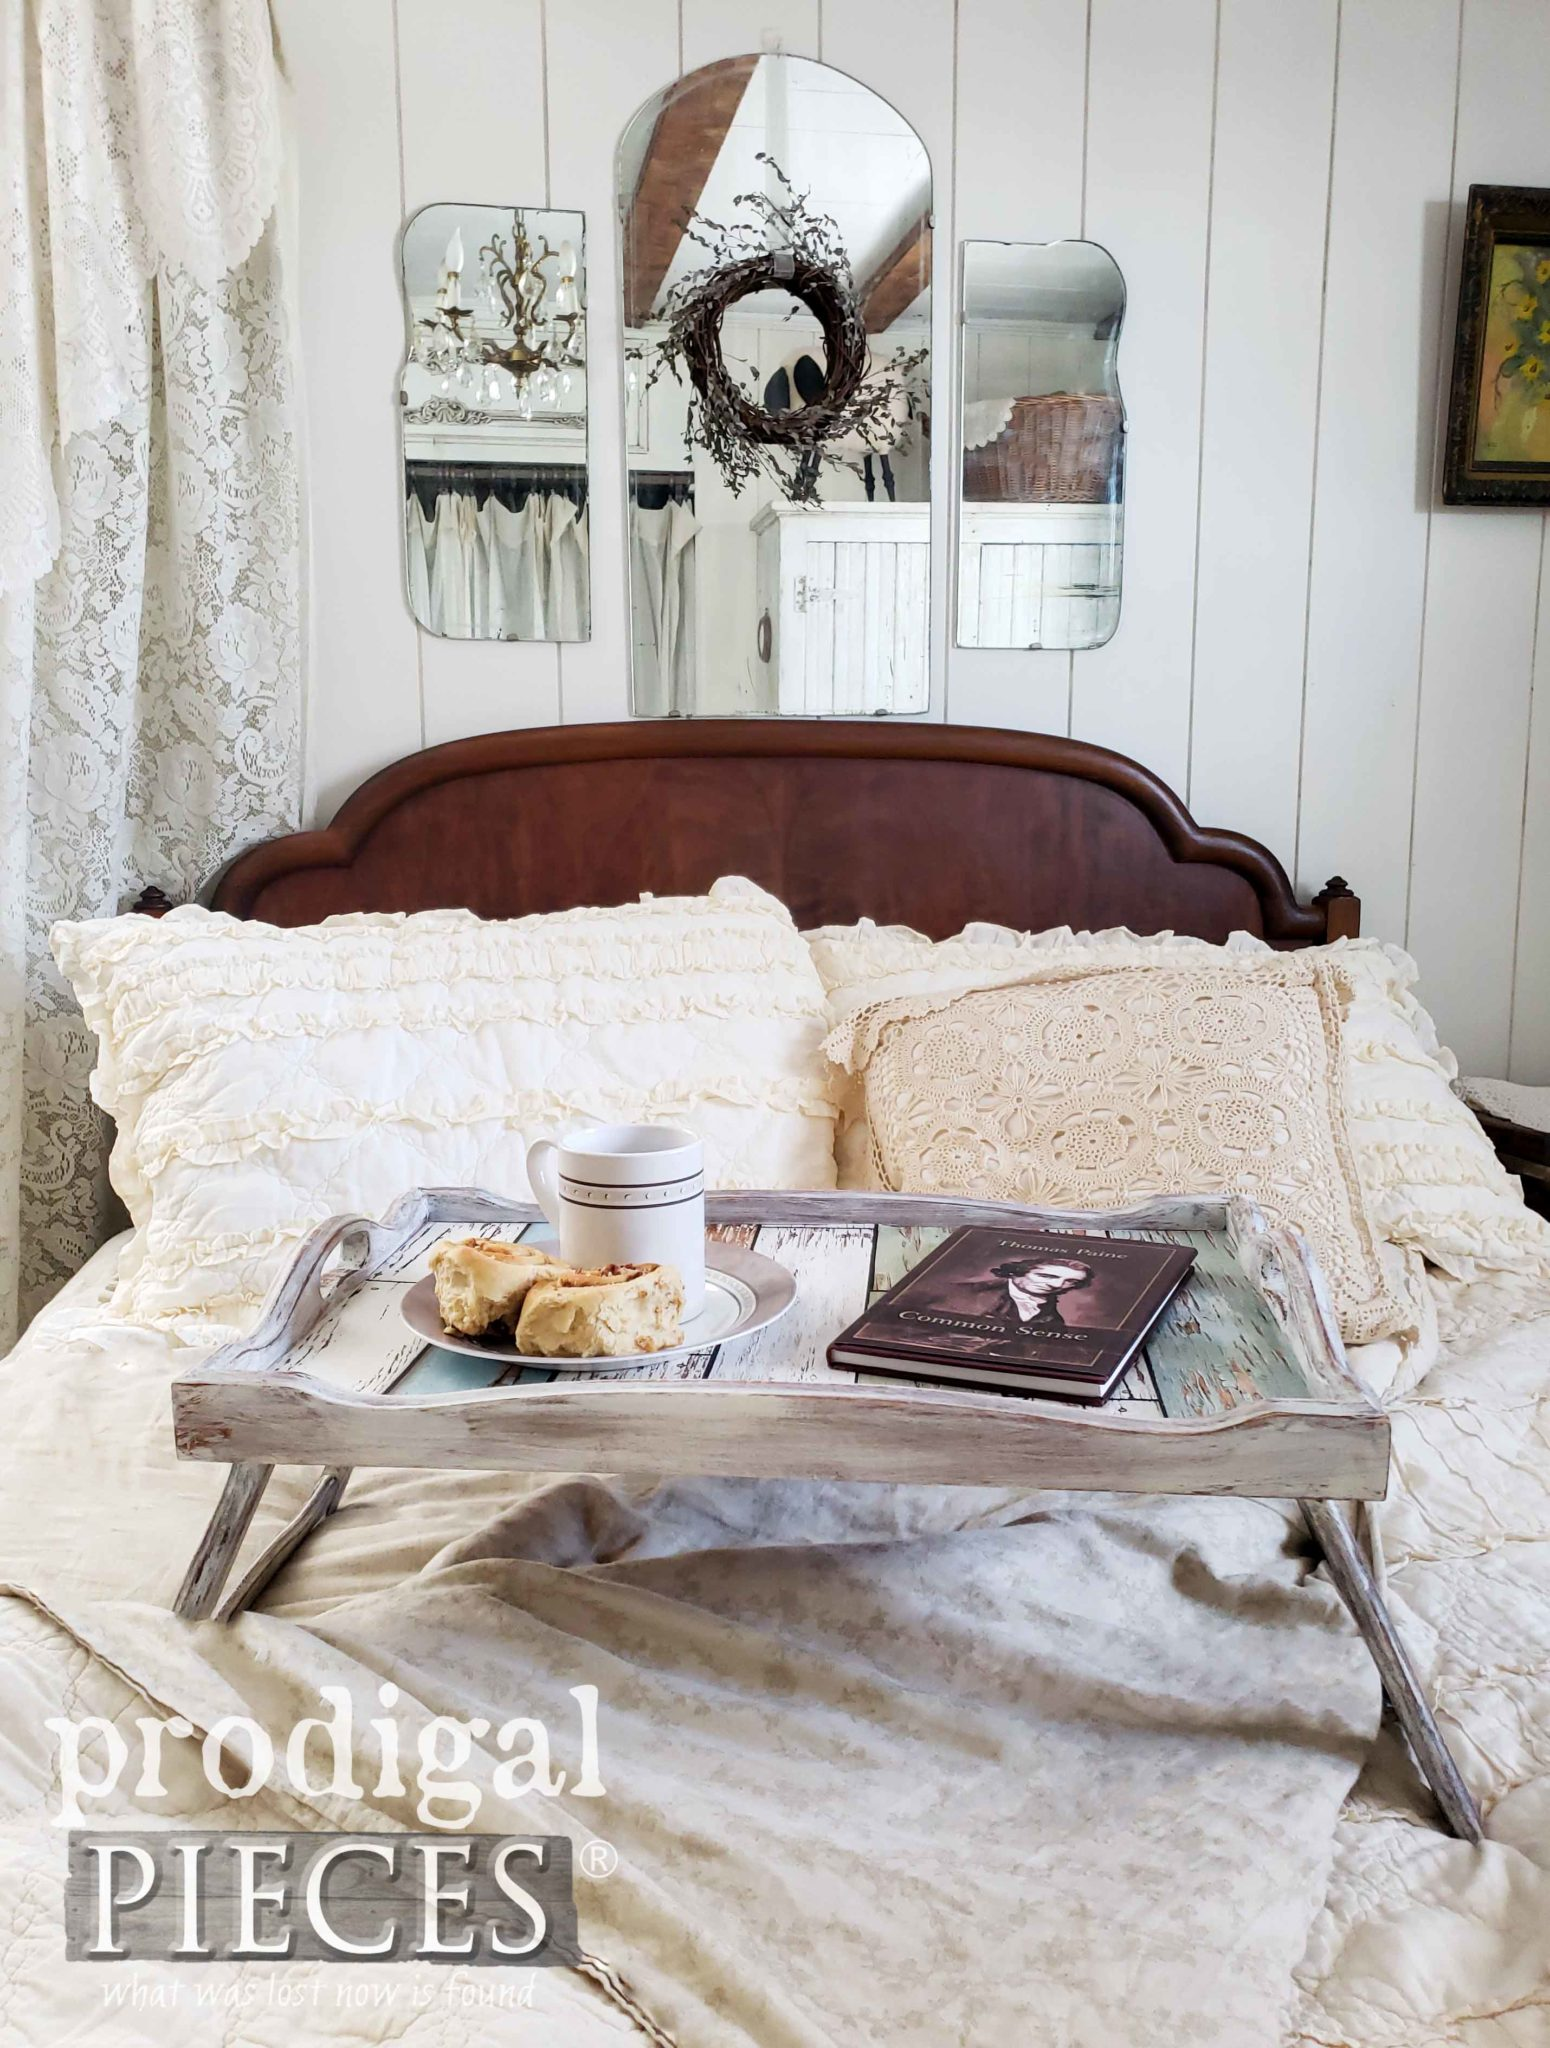 Vintage Bed Tray Gets Modern Farmhouse Makeover by Larissa of Prodigal Pieces | prodigalpieces.com #prodigalpieces #diy #home #handmade #homedecor #vintage #homedecorideas #farmhouse